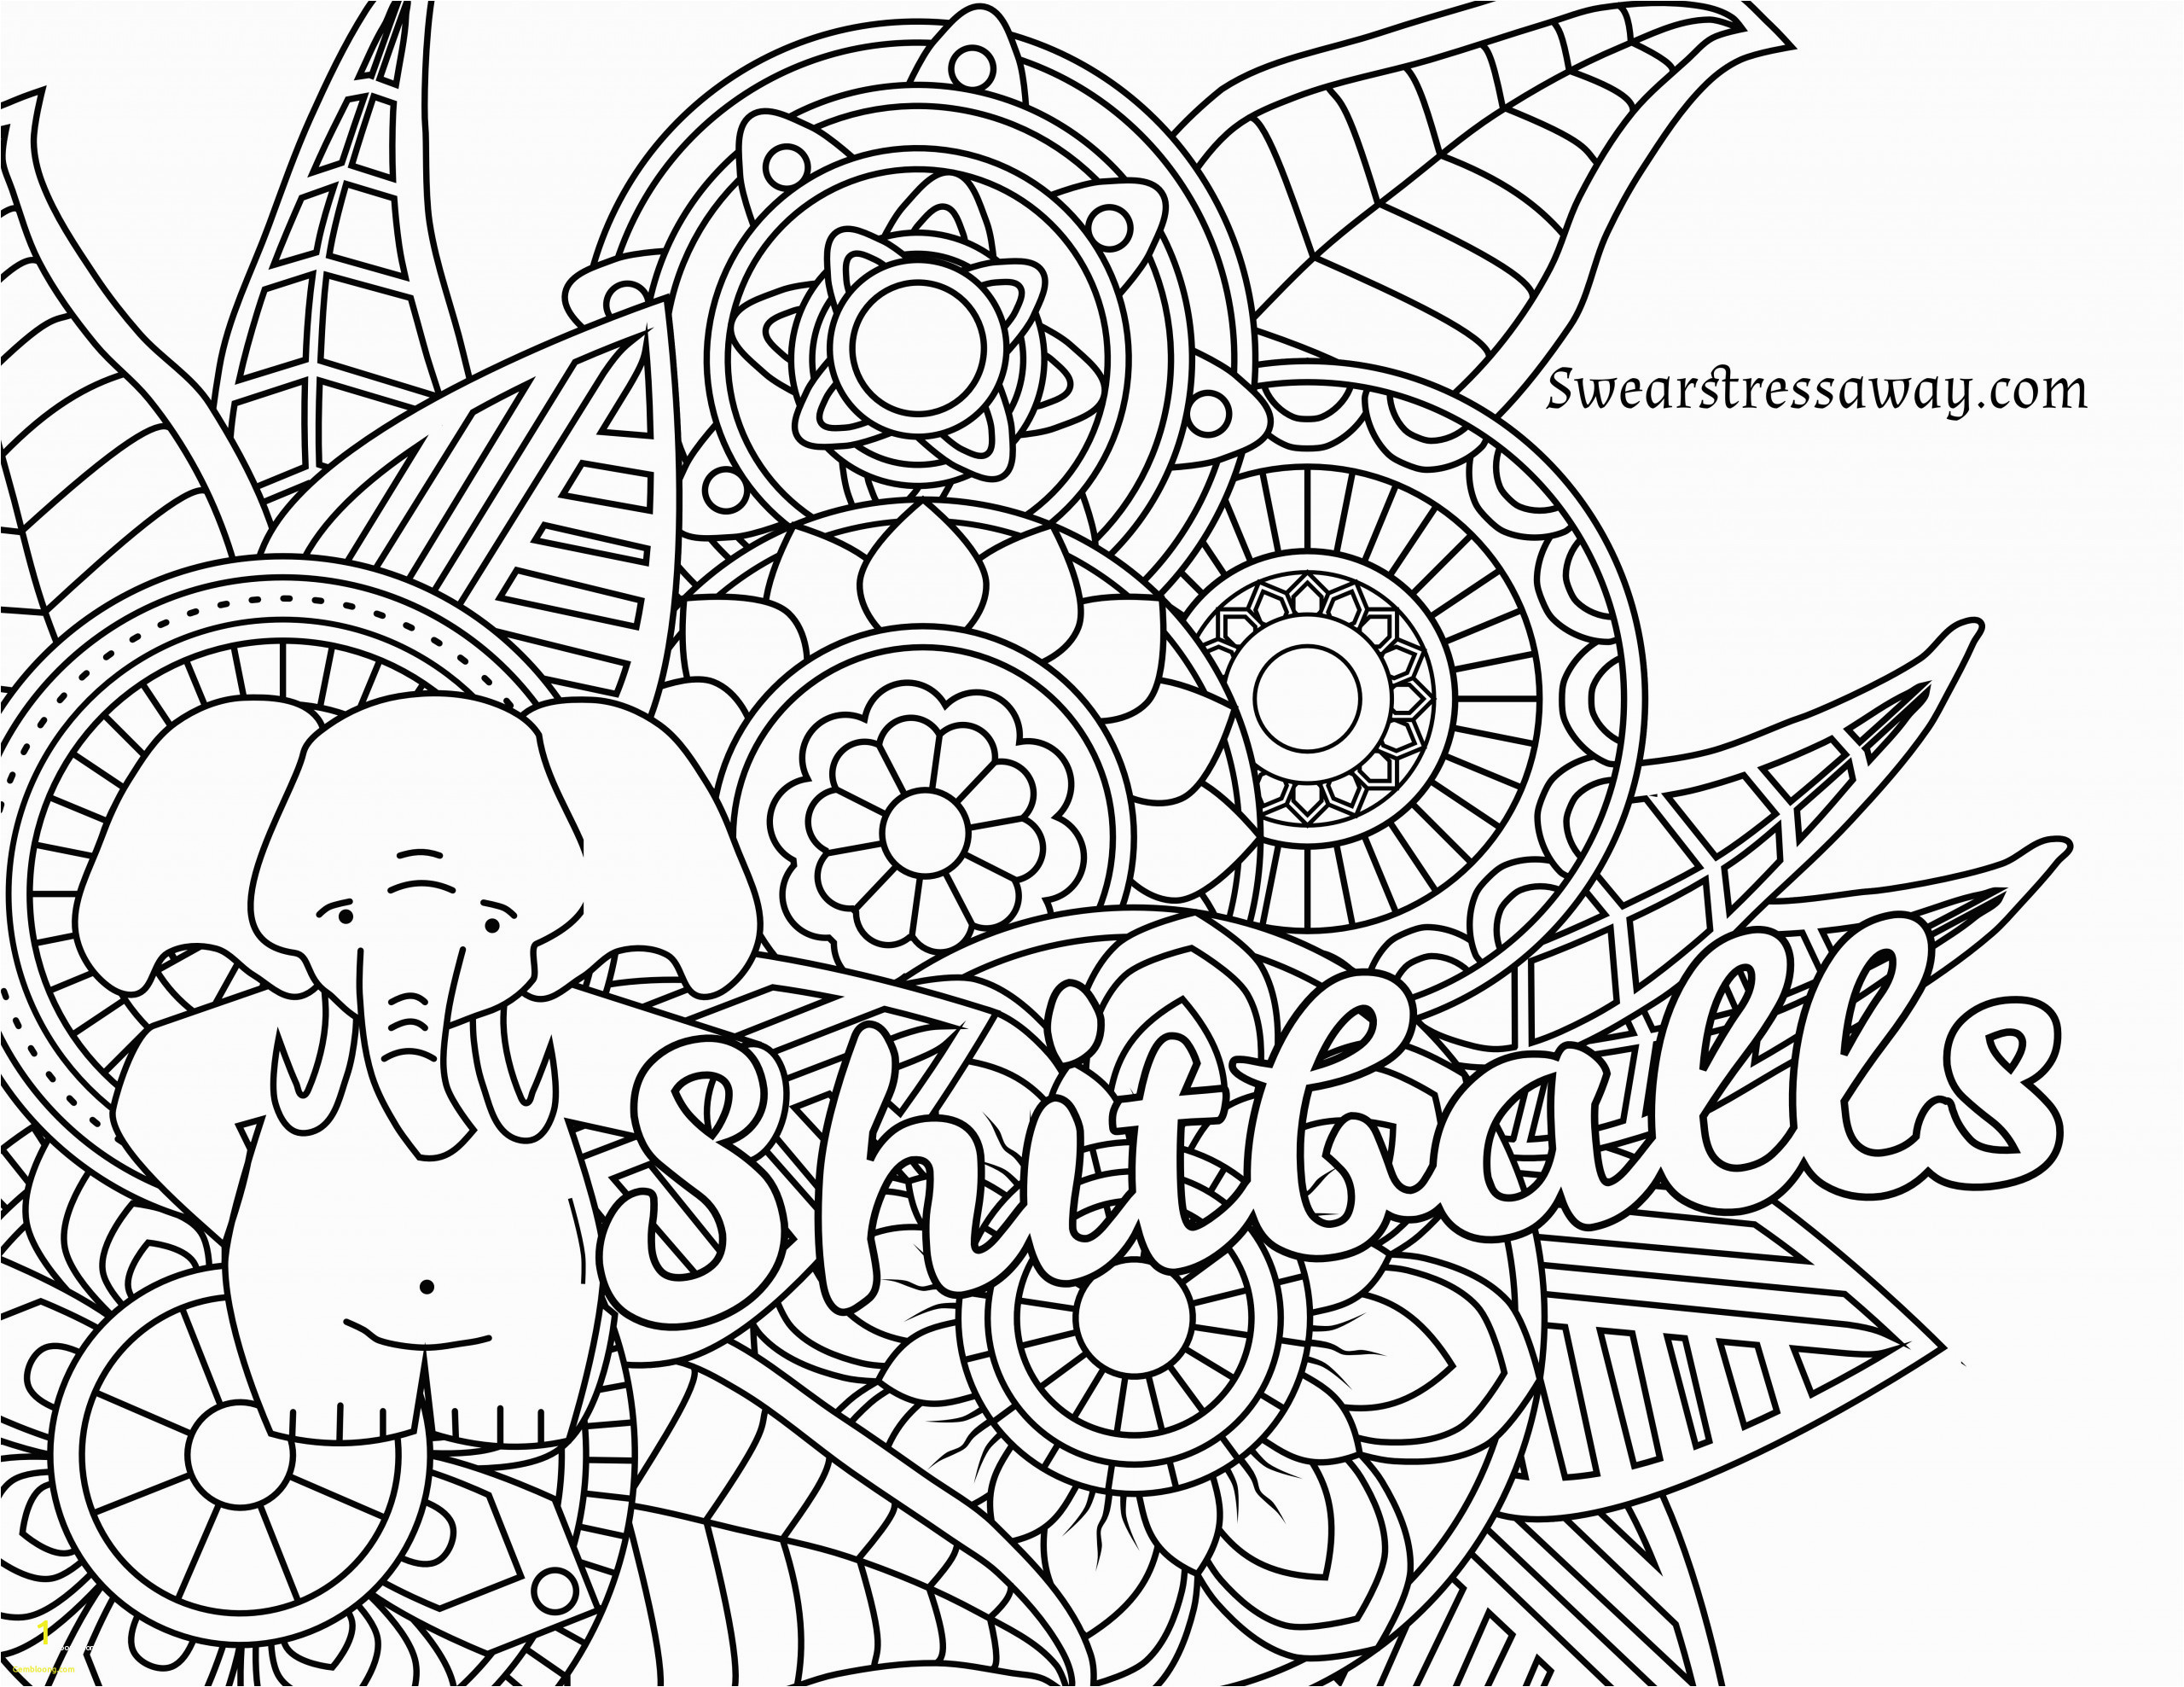 swear word printable coloring pages inspirational coloring pages coloring for adults swear words coloring of swear word printable coloring pages